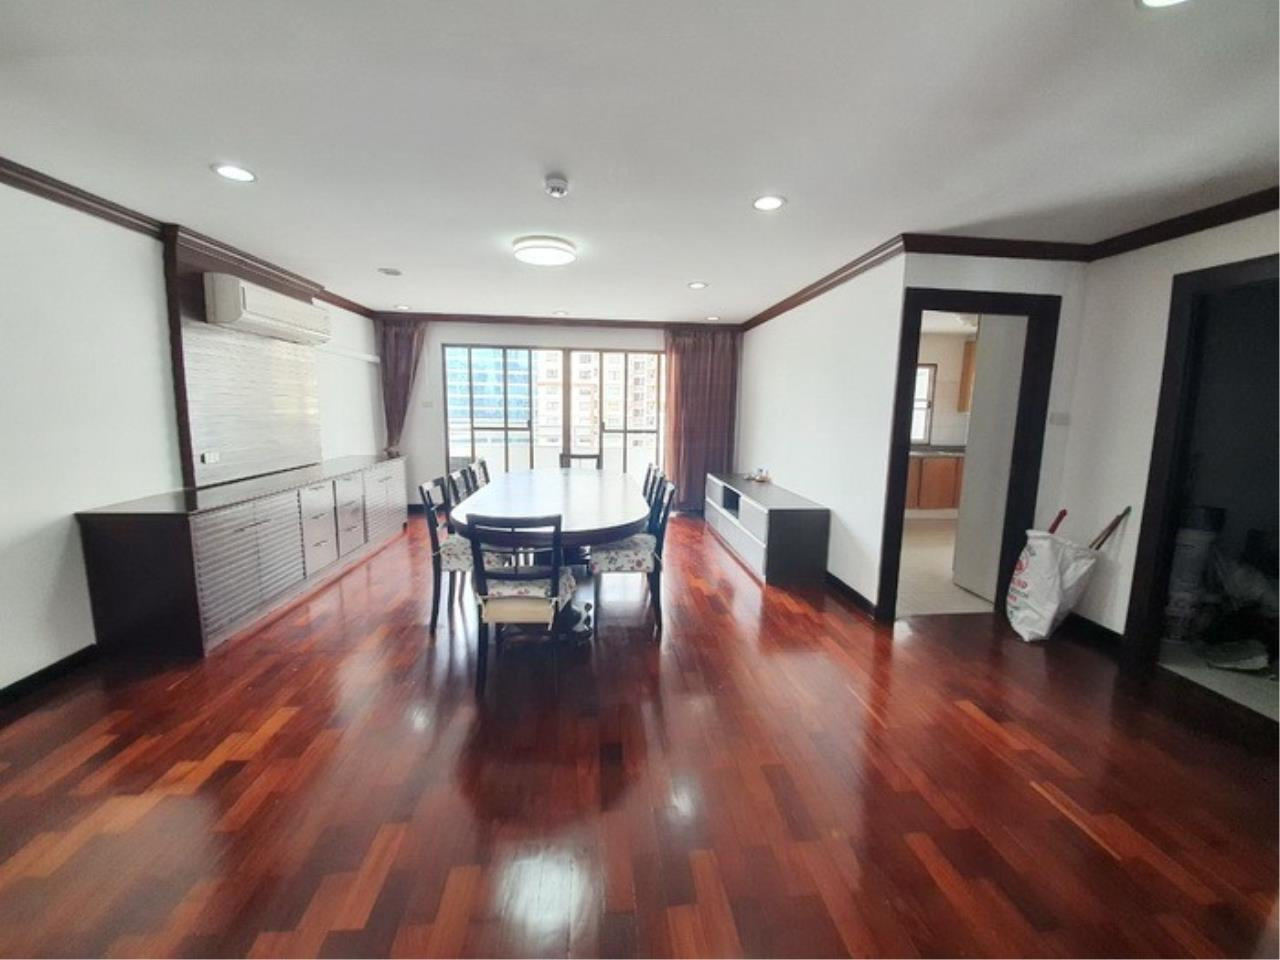 Bestbkkcondos Agency's regent on the park 1 - 250 Sq.M - for rent: 60000 THB - 3 bedrooms,3 bathrooms 2